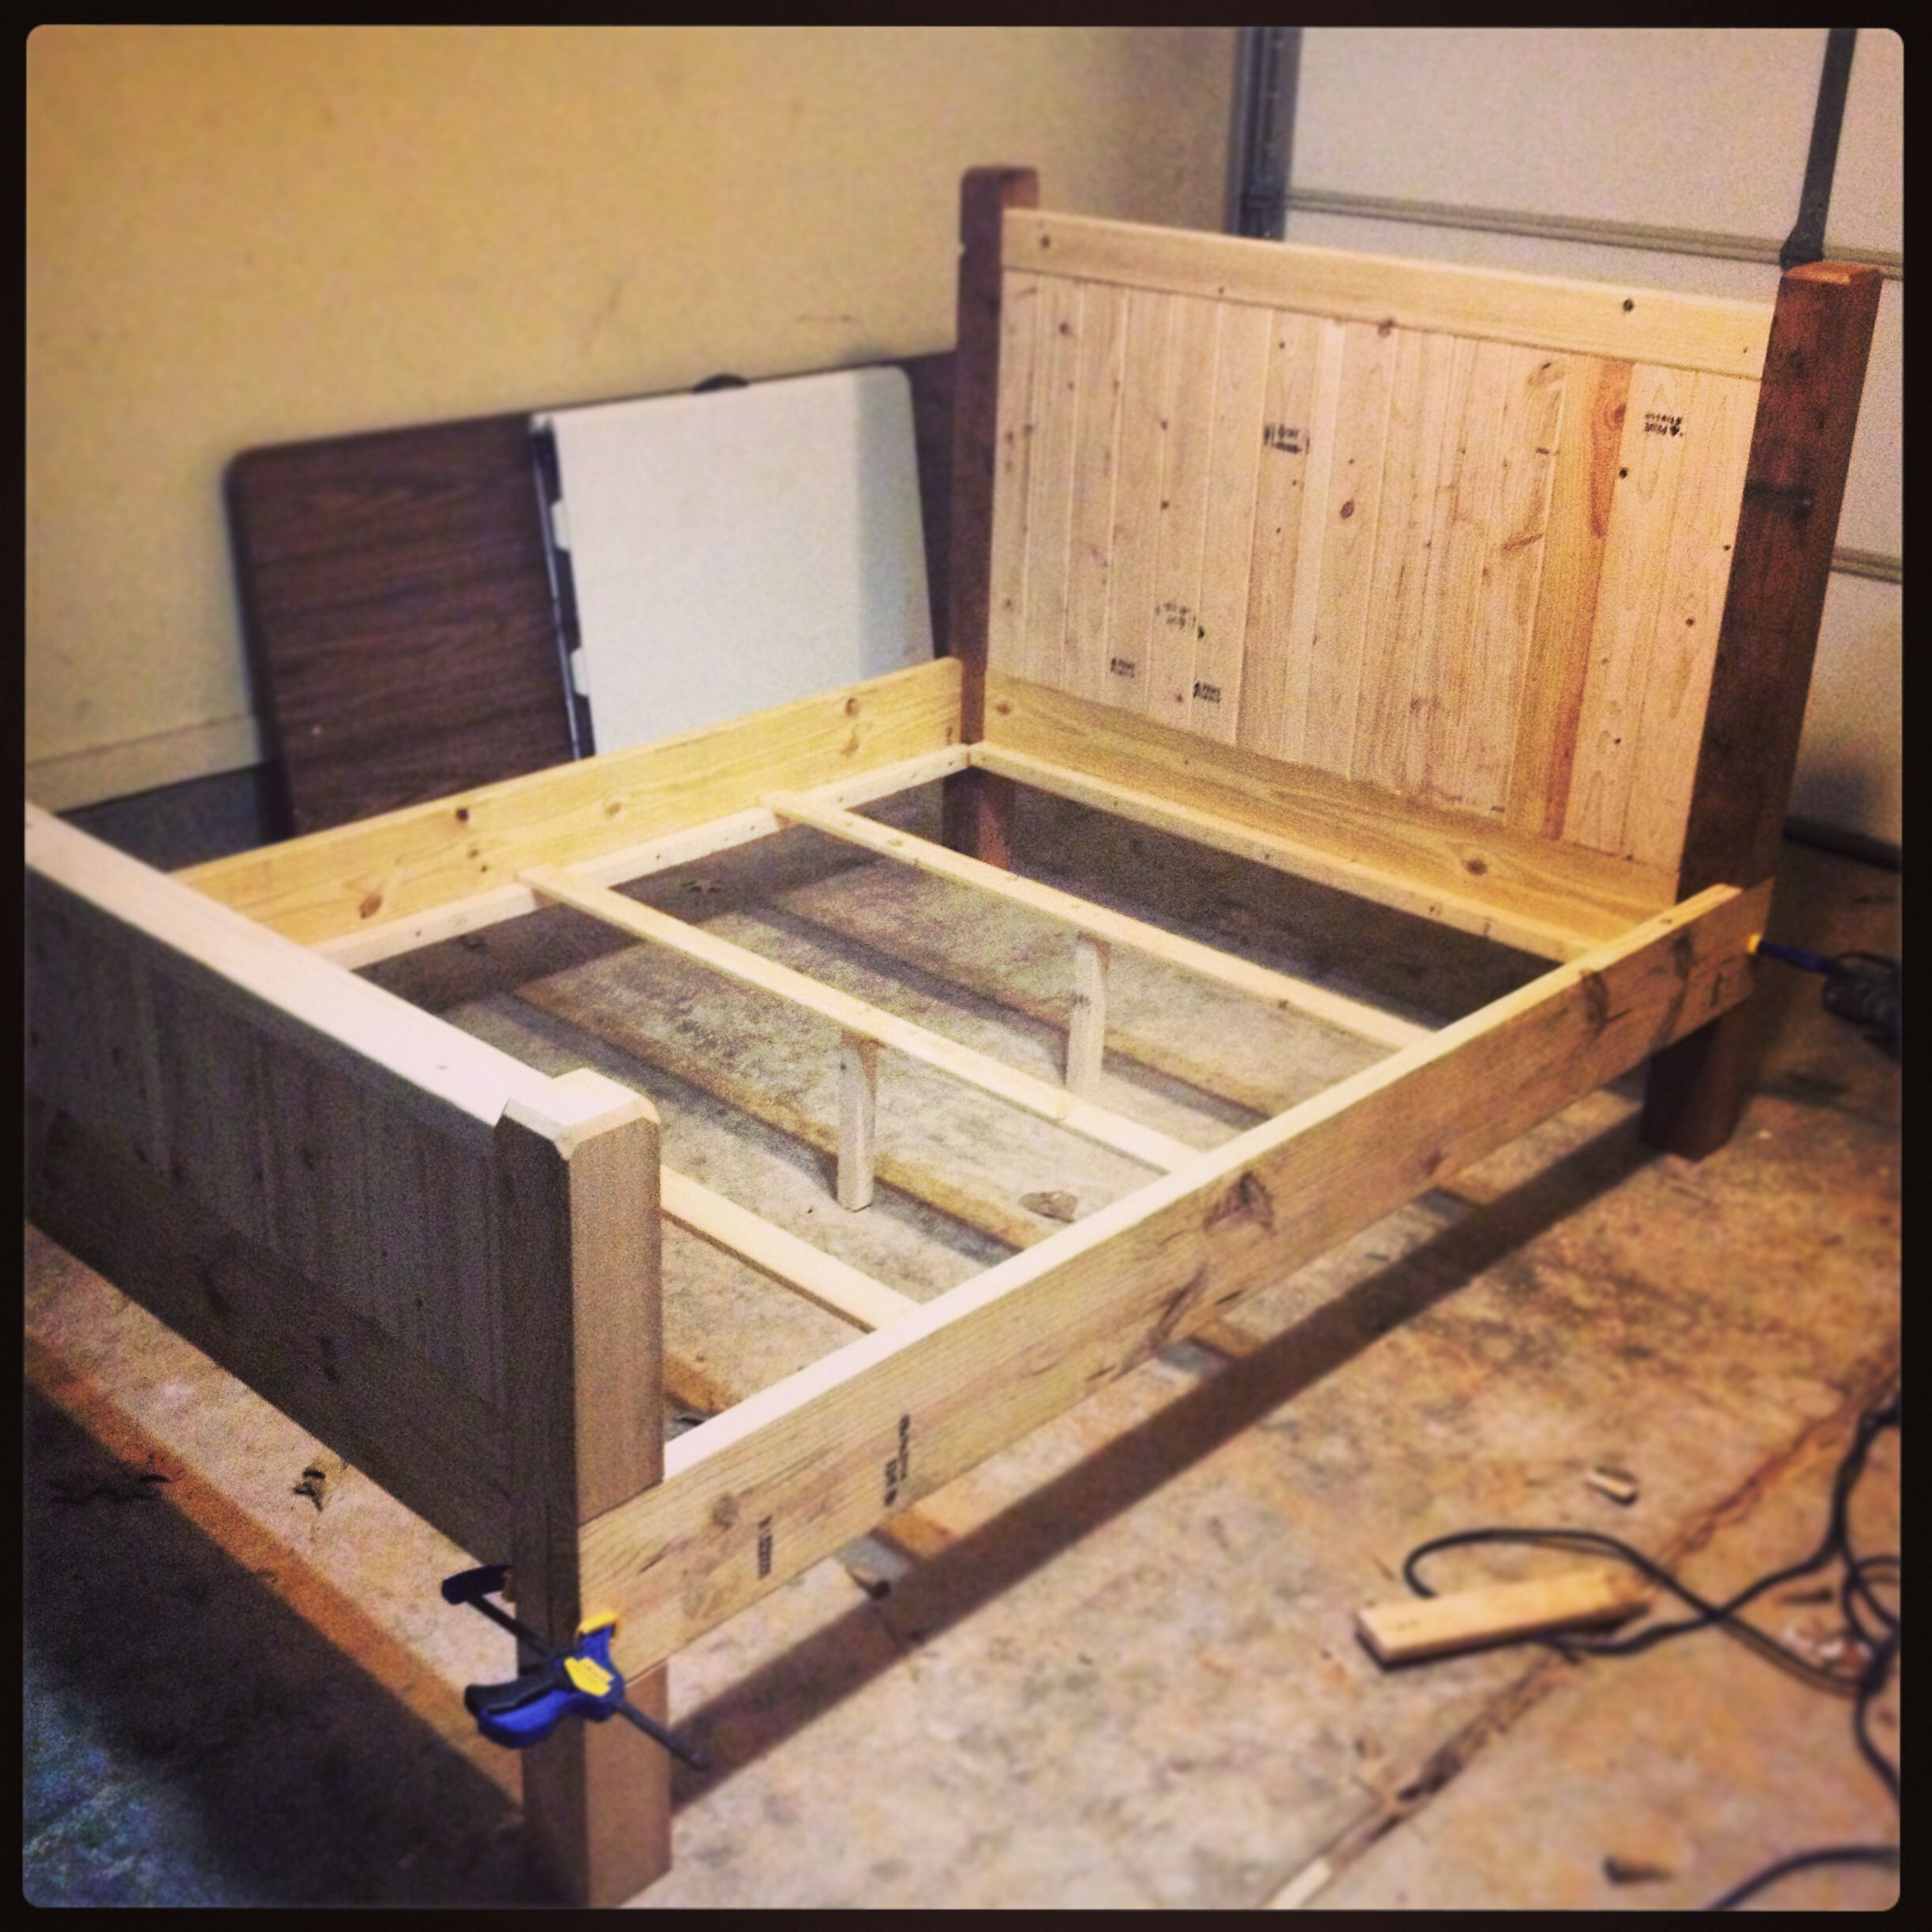 Diy Full Size Bed Frame Almost Finished Made With 2x4s 2x8s And 4x4 Posts Final Result Will Be Diy Full Size